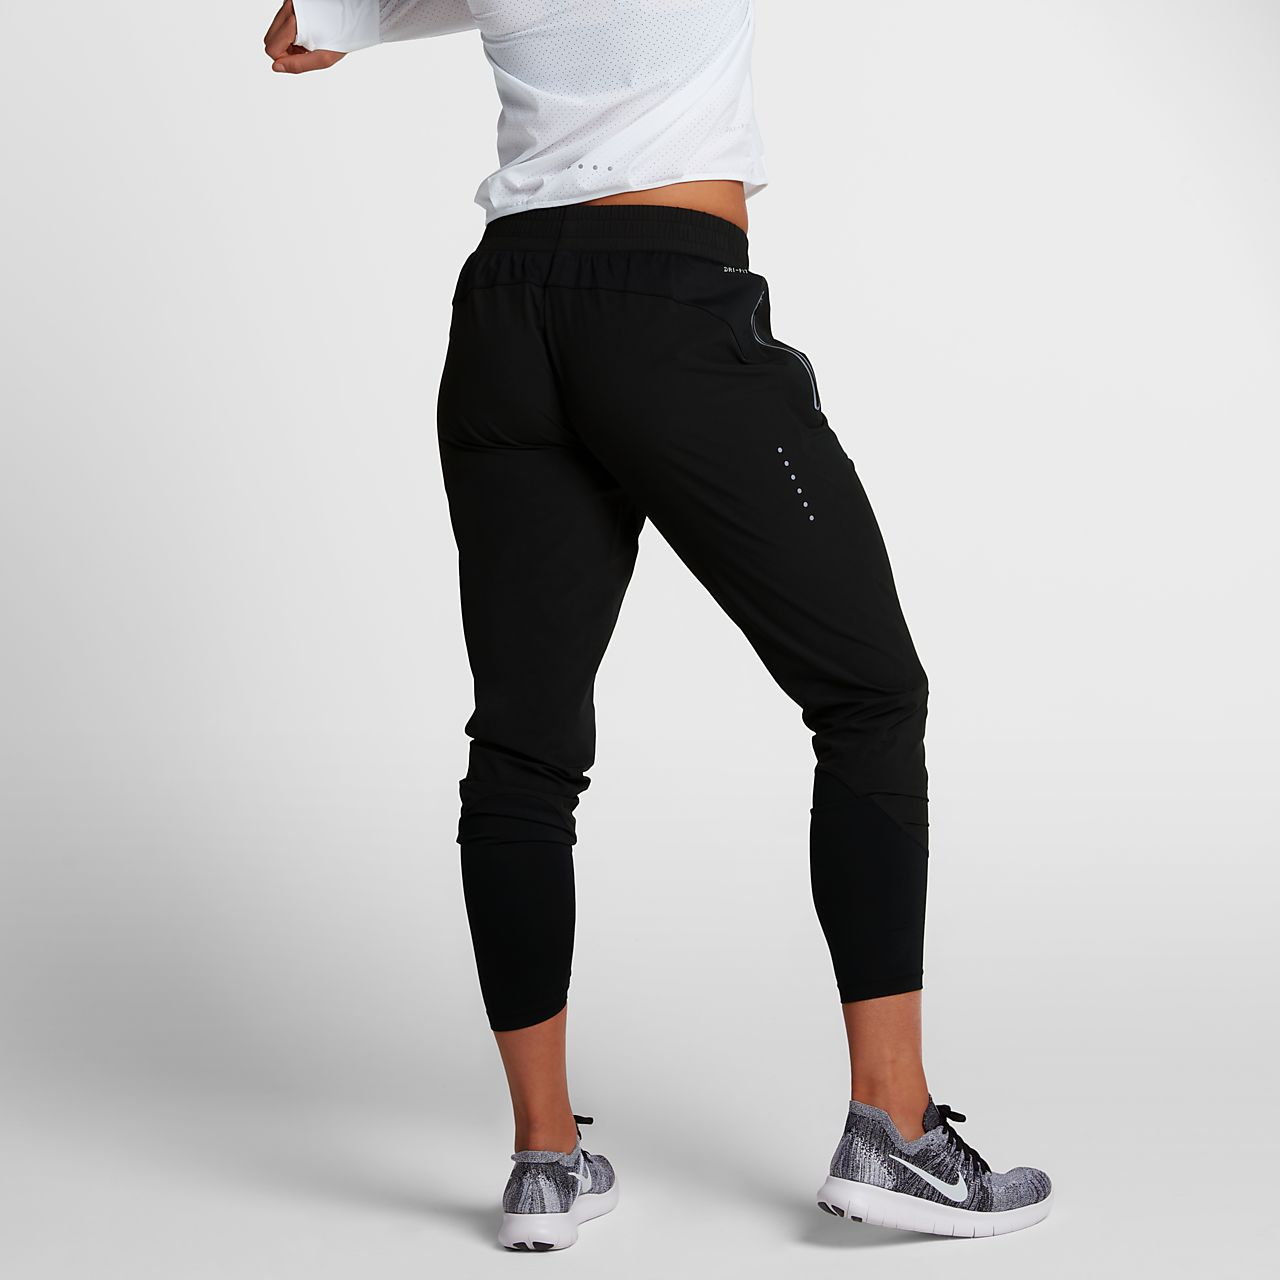 What are the best women's compression pants, tights and leggings? There is a large selection of women's compression pants available. Compression Wearables has conveniently listed some of the top compression pants for women below that are suitable for most uses.